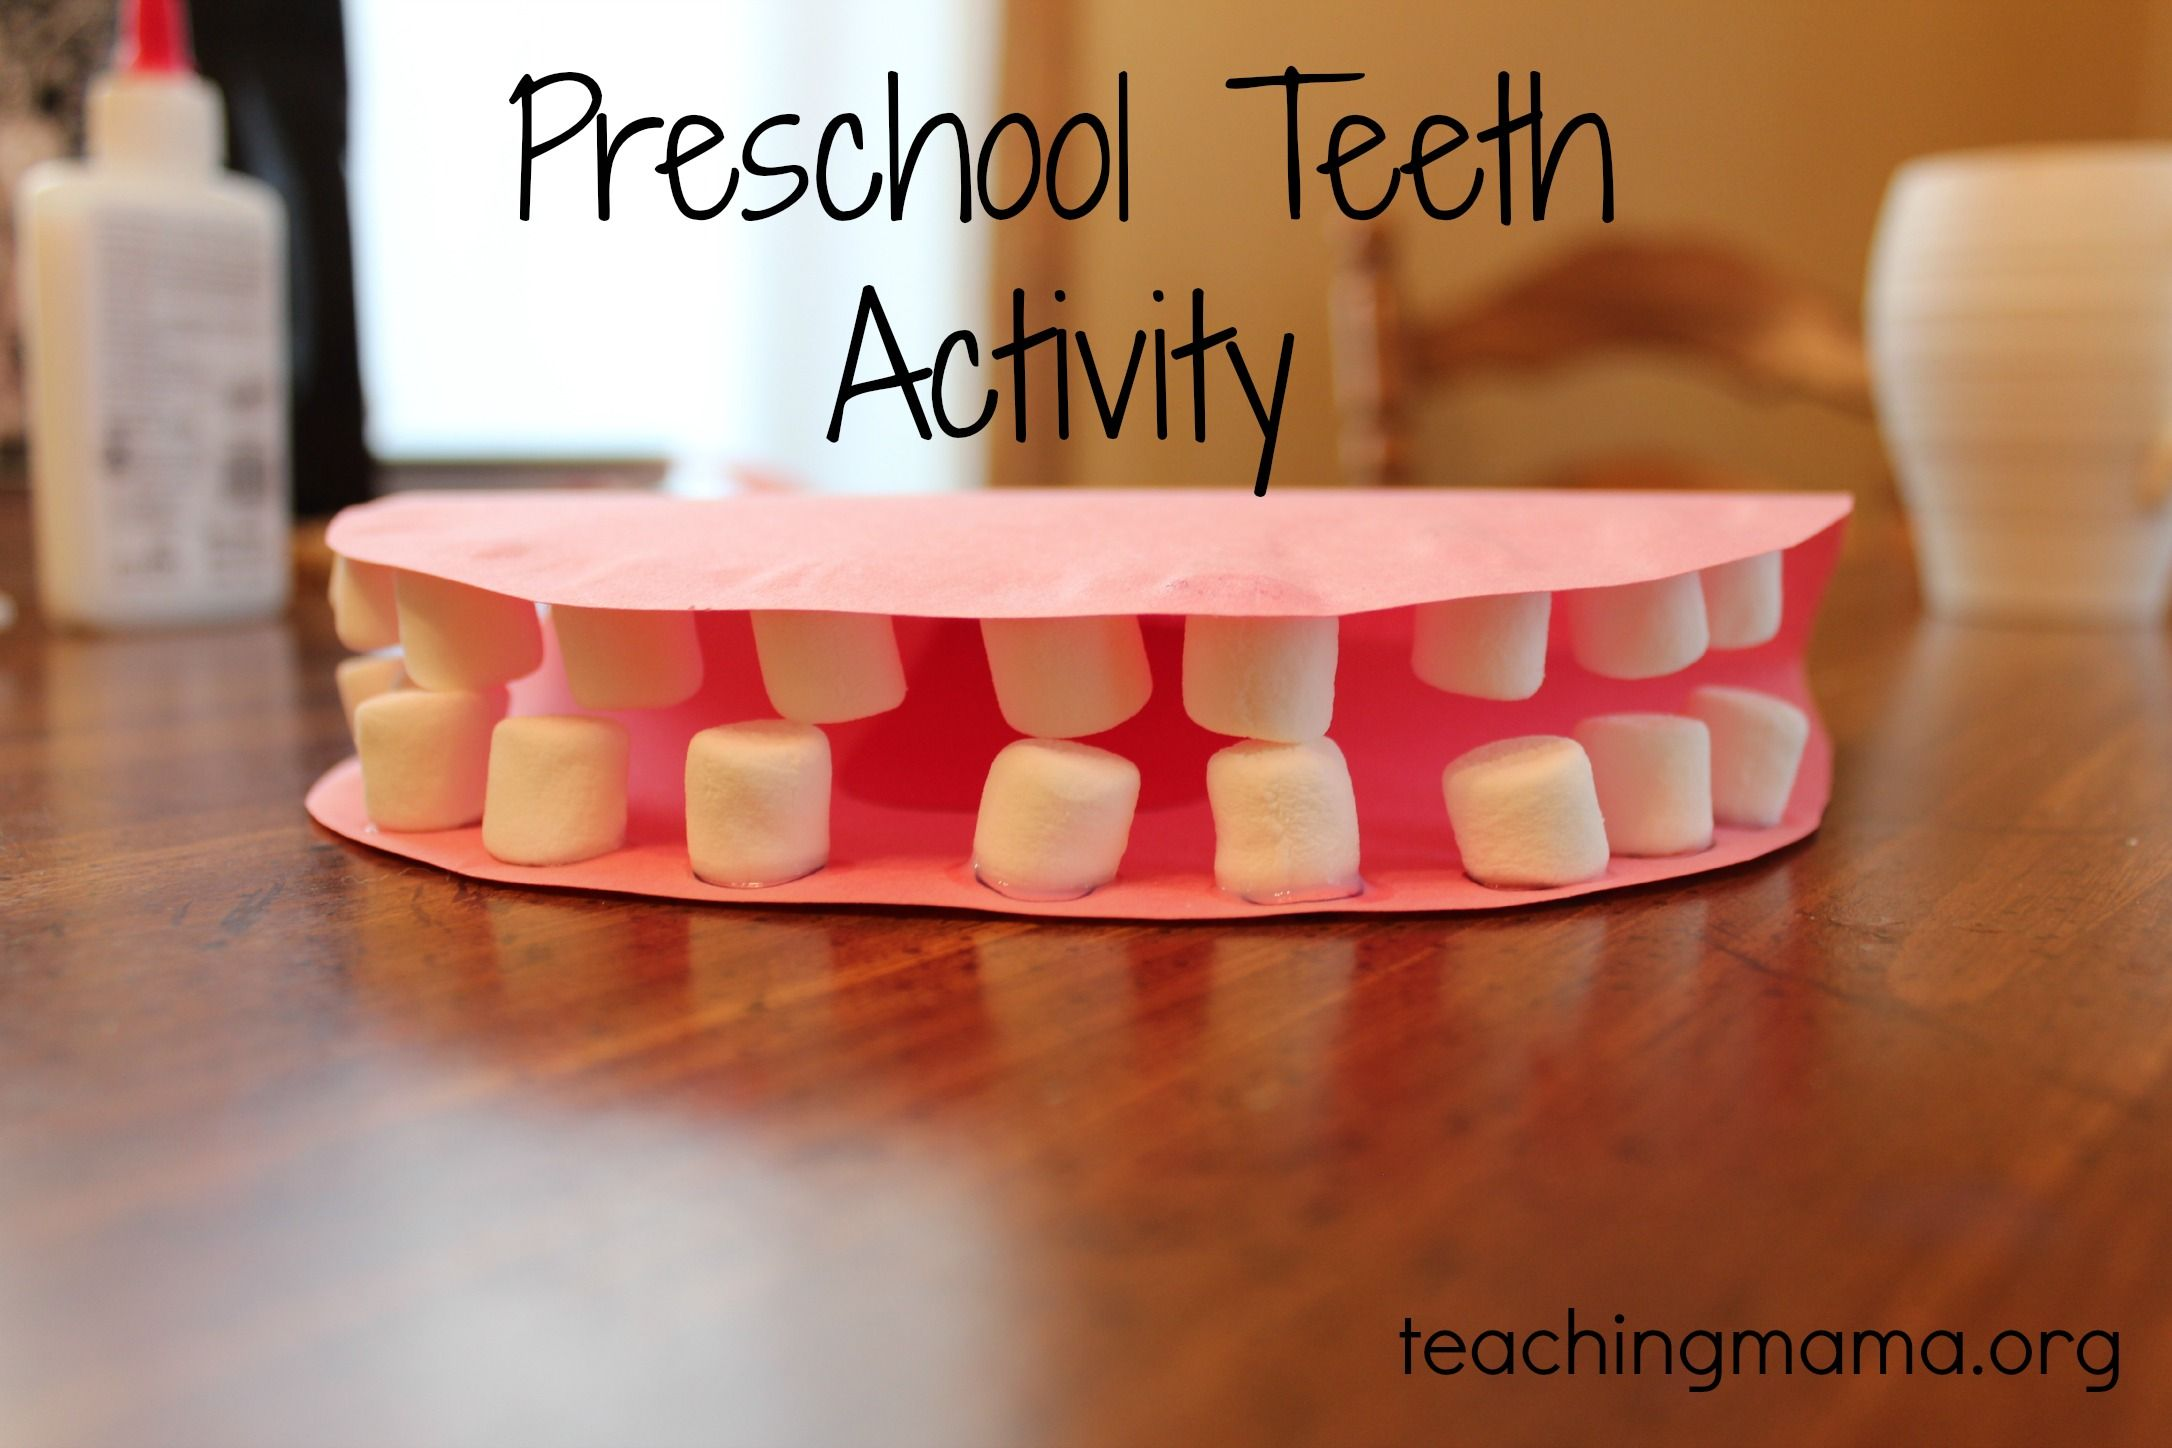 Preschool Teeth Lesson Helps Kids Understand How Important It Is To Have White Teeth When You